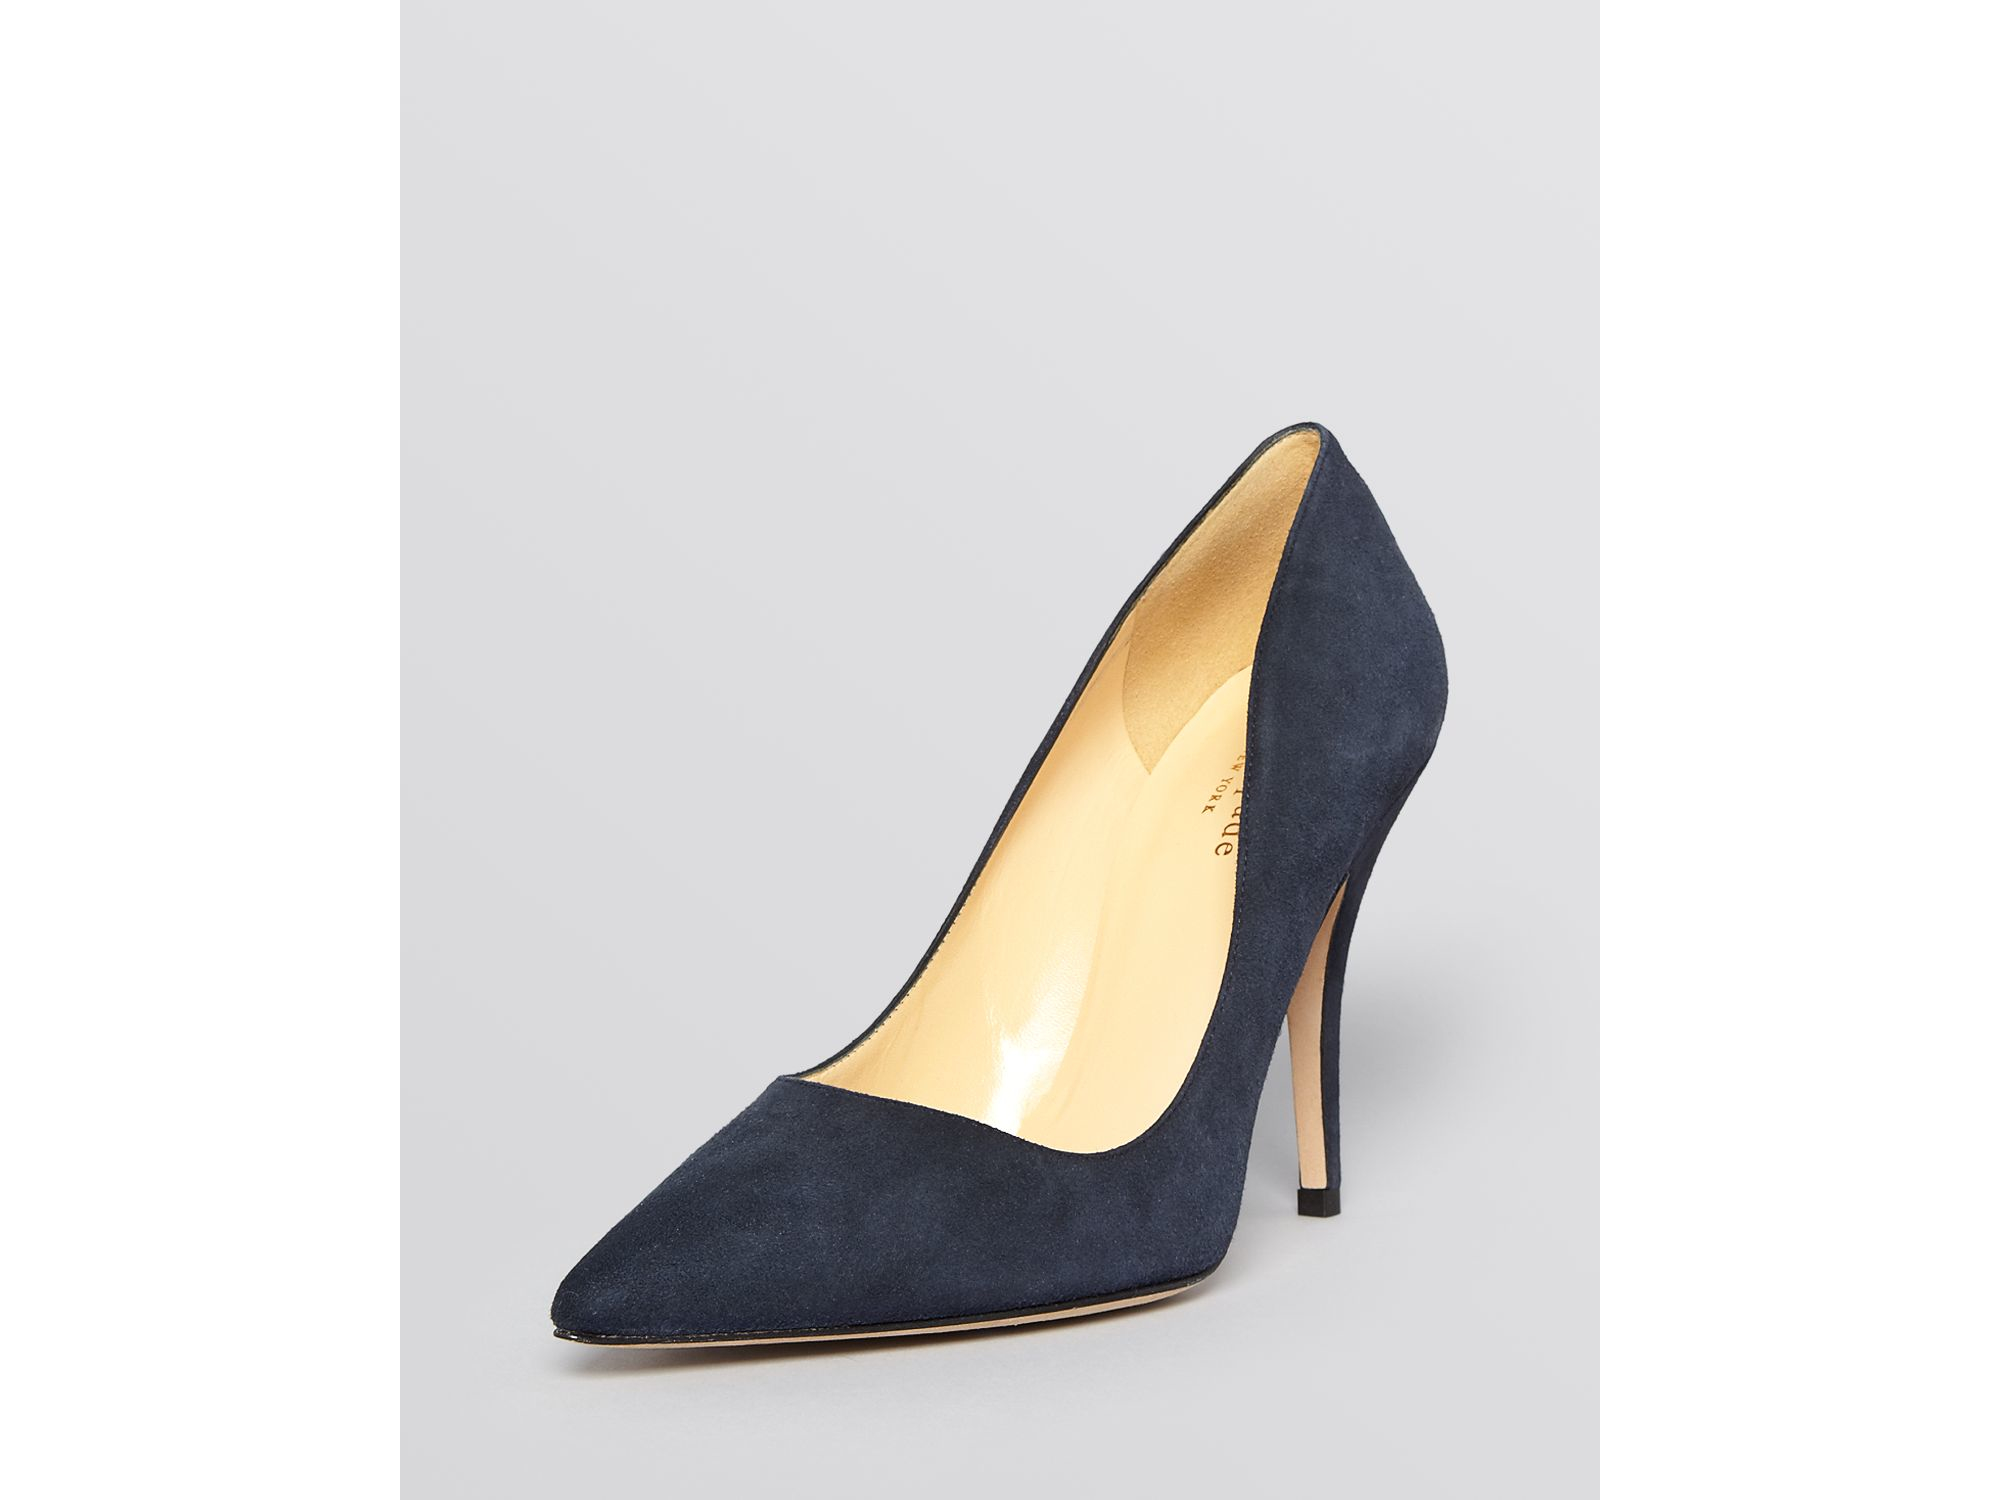 Kate Spade New York Licorice Patent High-Heel Pointed Toe Pumps